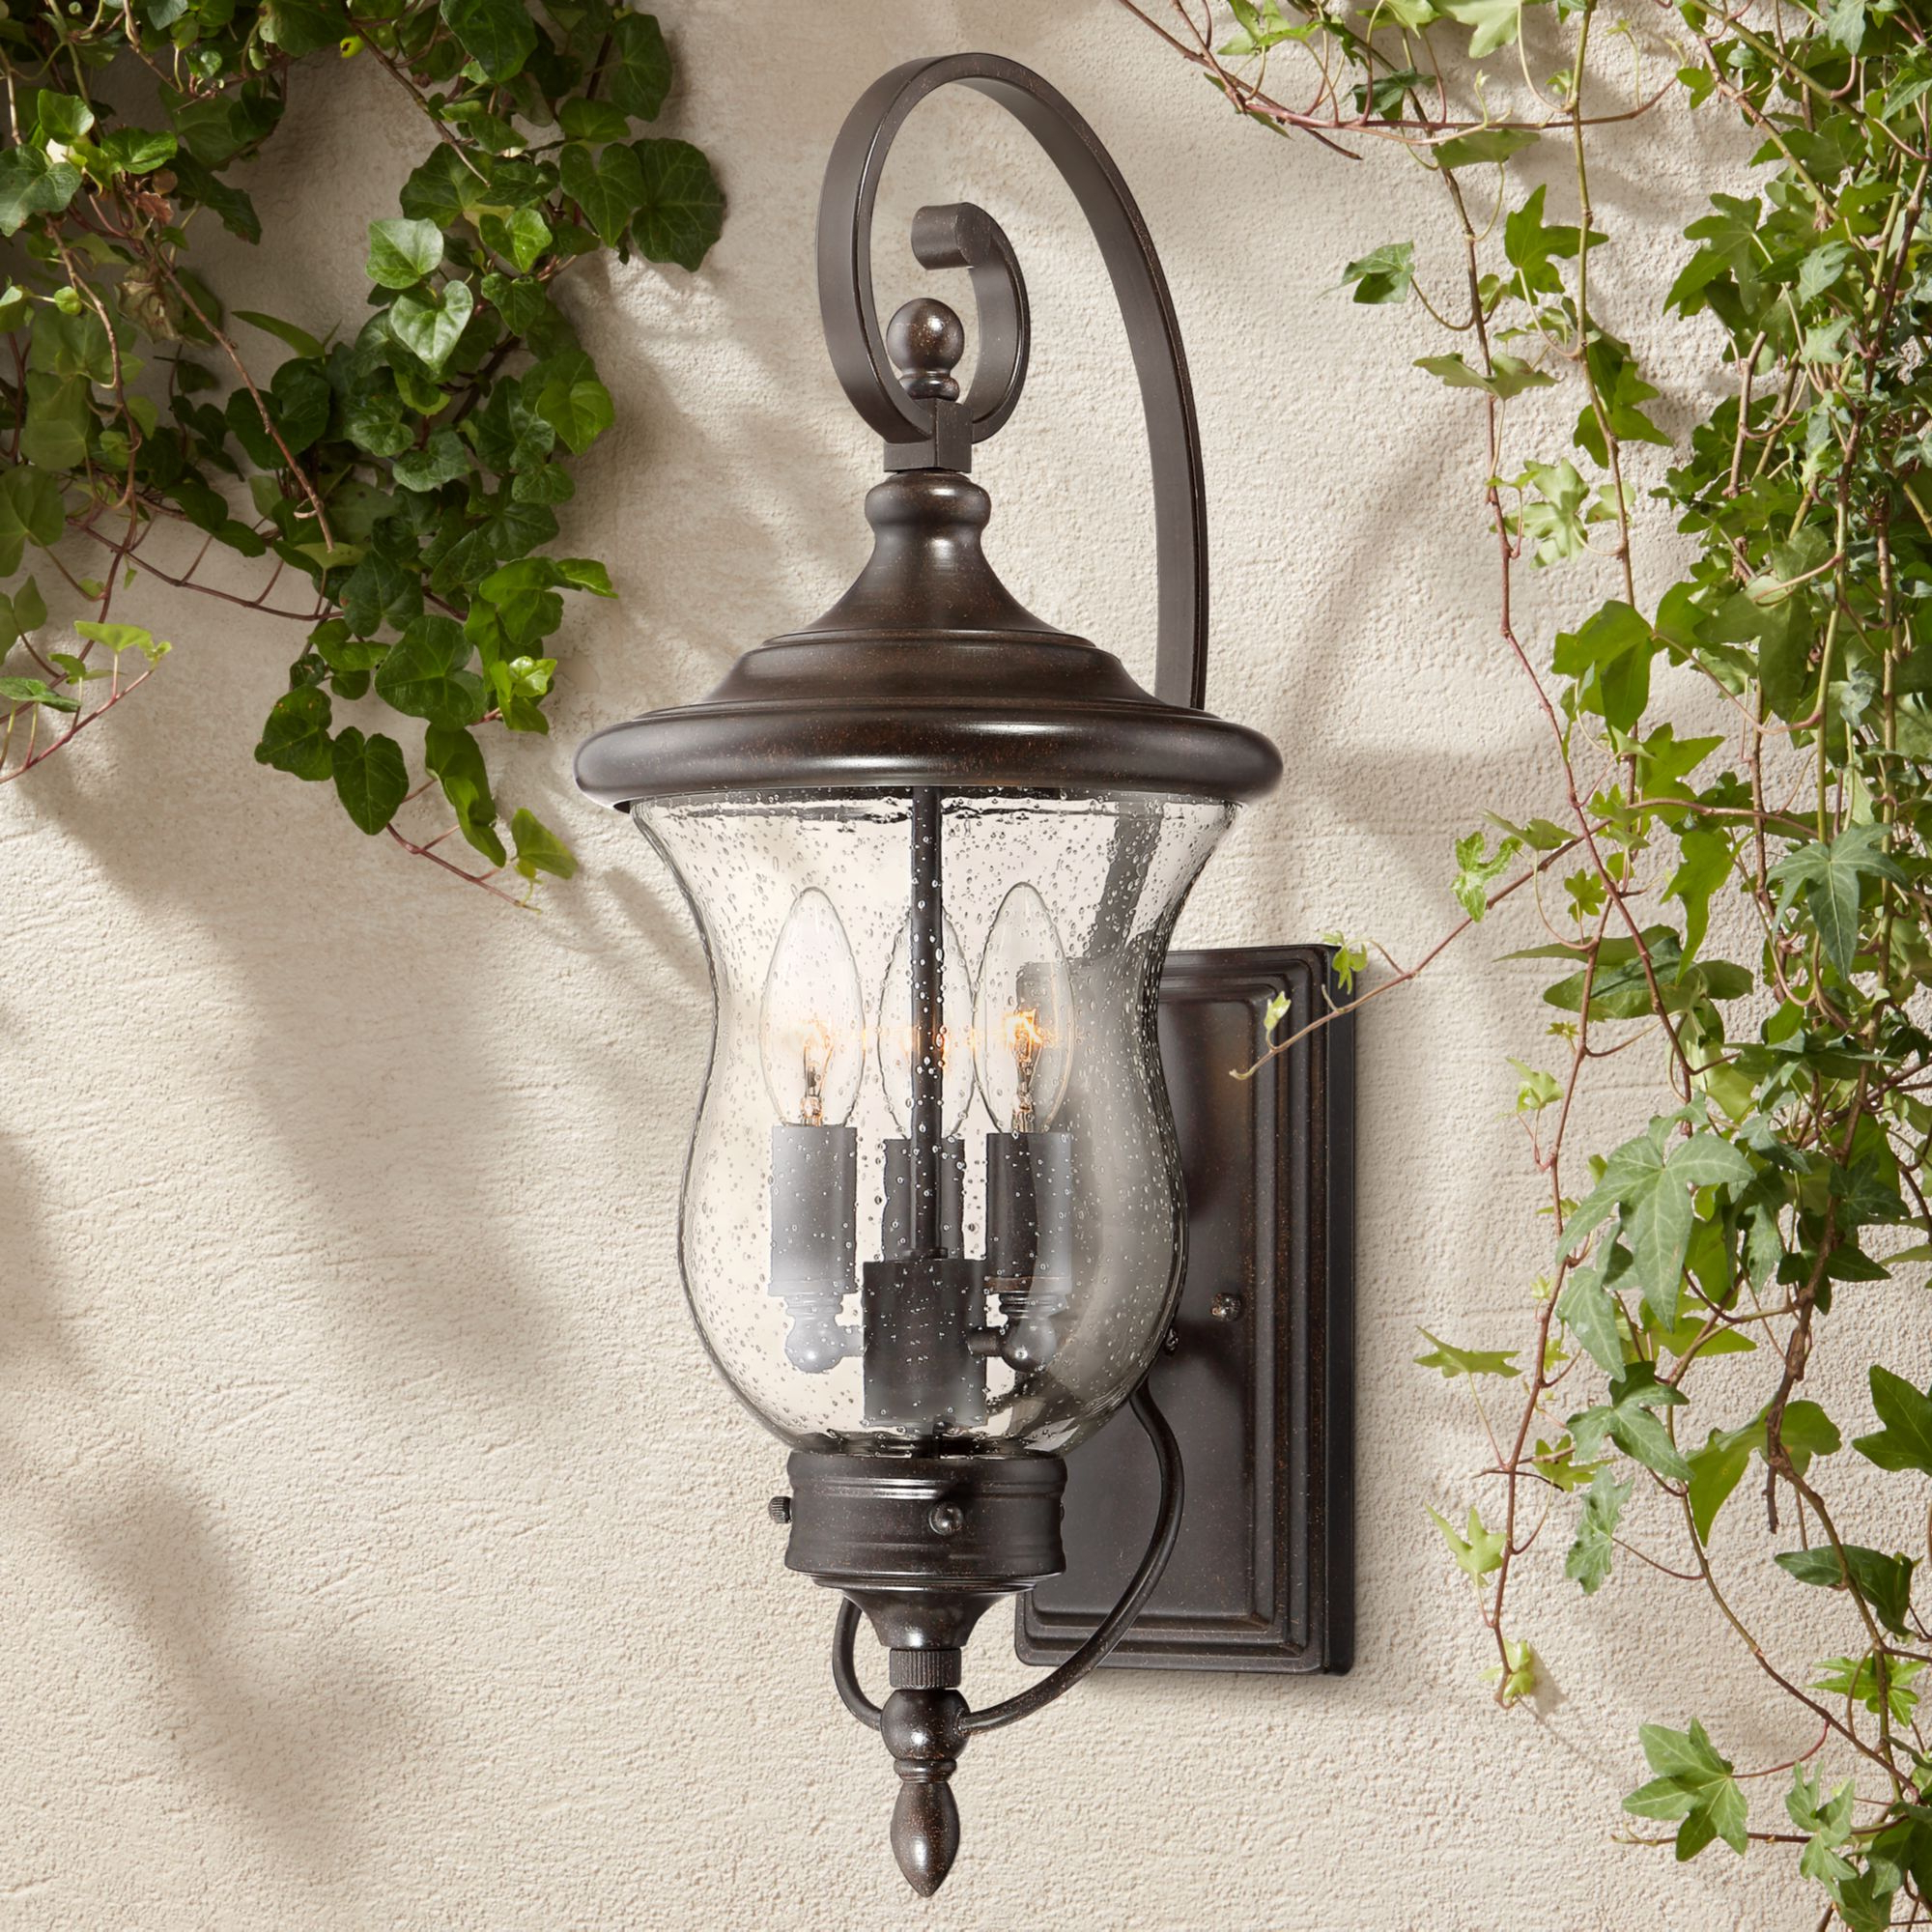 Carrington Beveled Glass Outdoor Wall Lanterns With Trendy Franklin Iron Works Traditional Outdoor Wall Light Fixture (View 5 of 15)